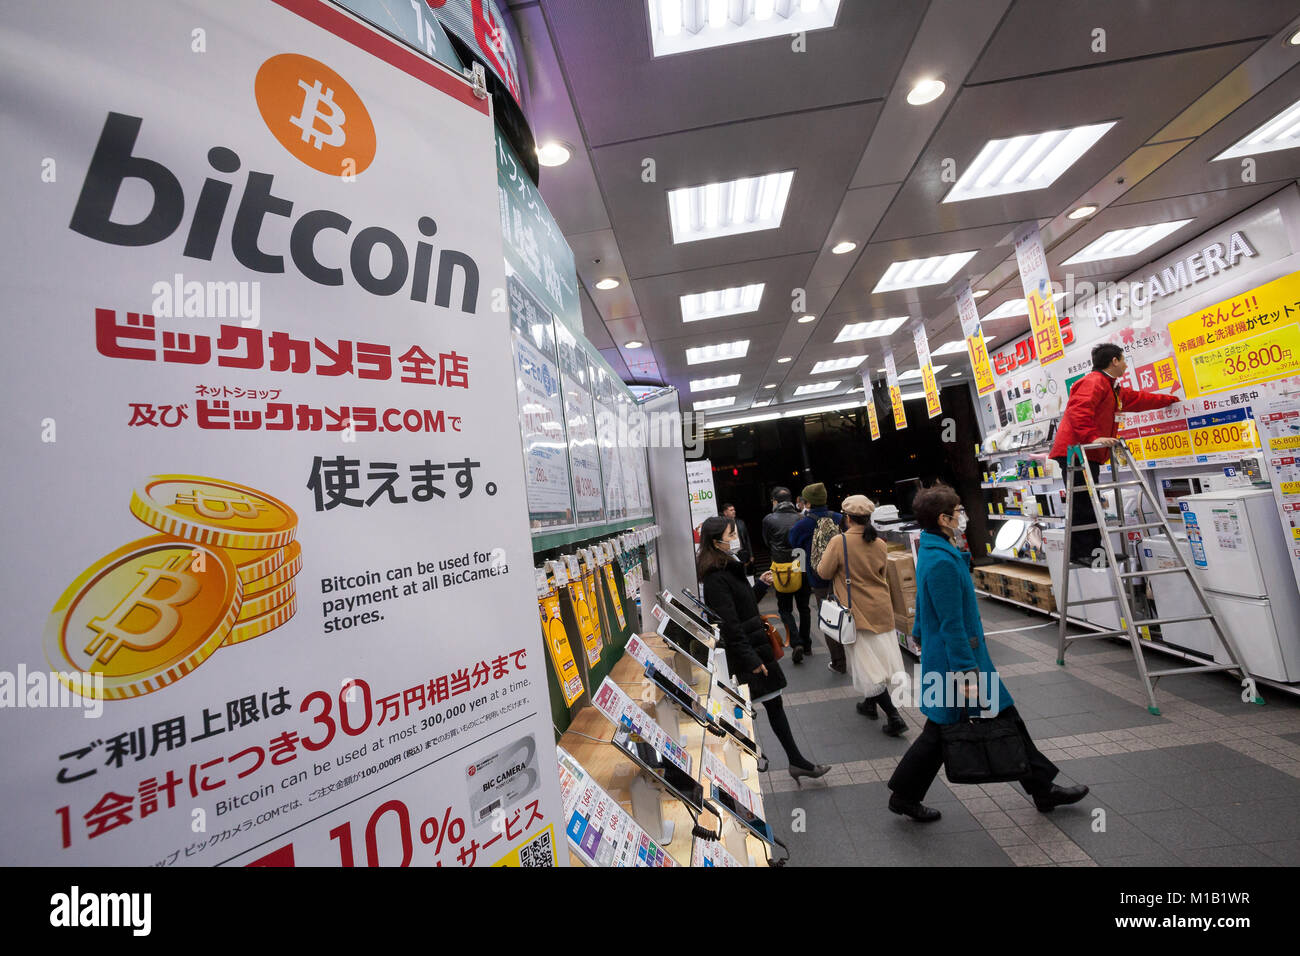 Signs advertising the ability to pay with Bitcoins in Bic Camera, Yurakucho, Tokyo, Japan. Friday January 19th 2018. - Stock Image